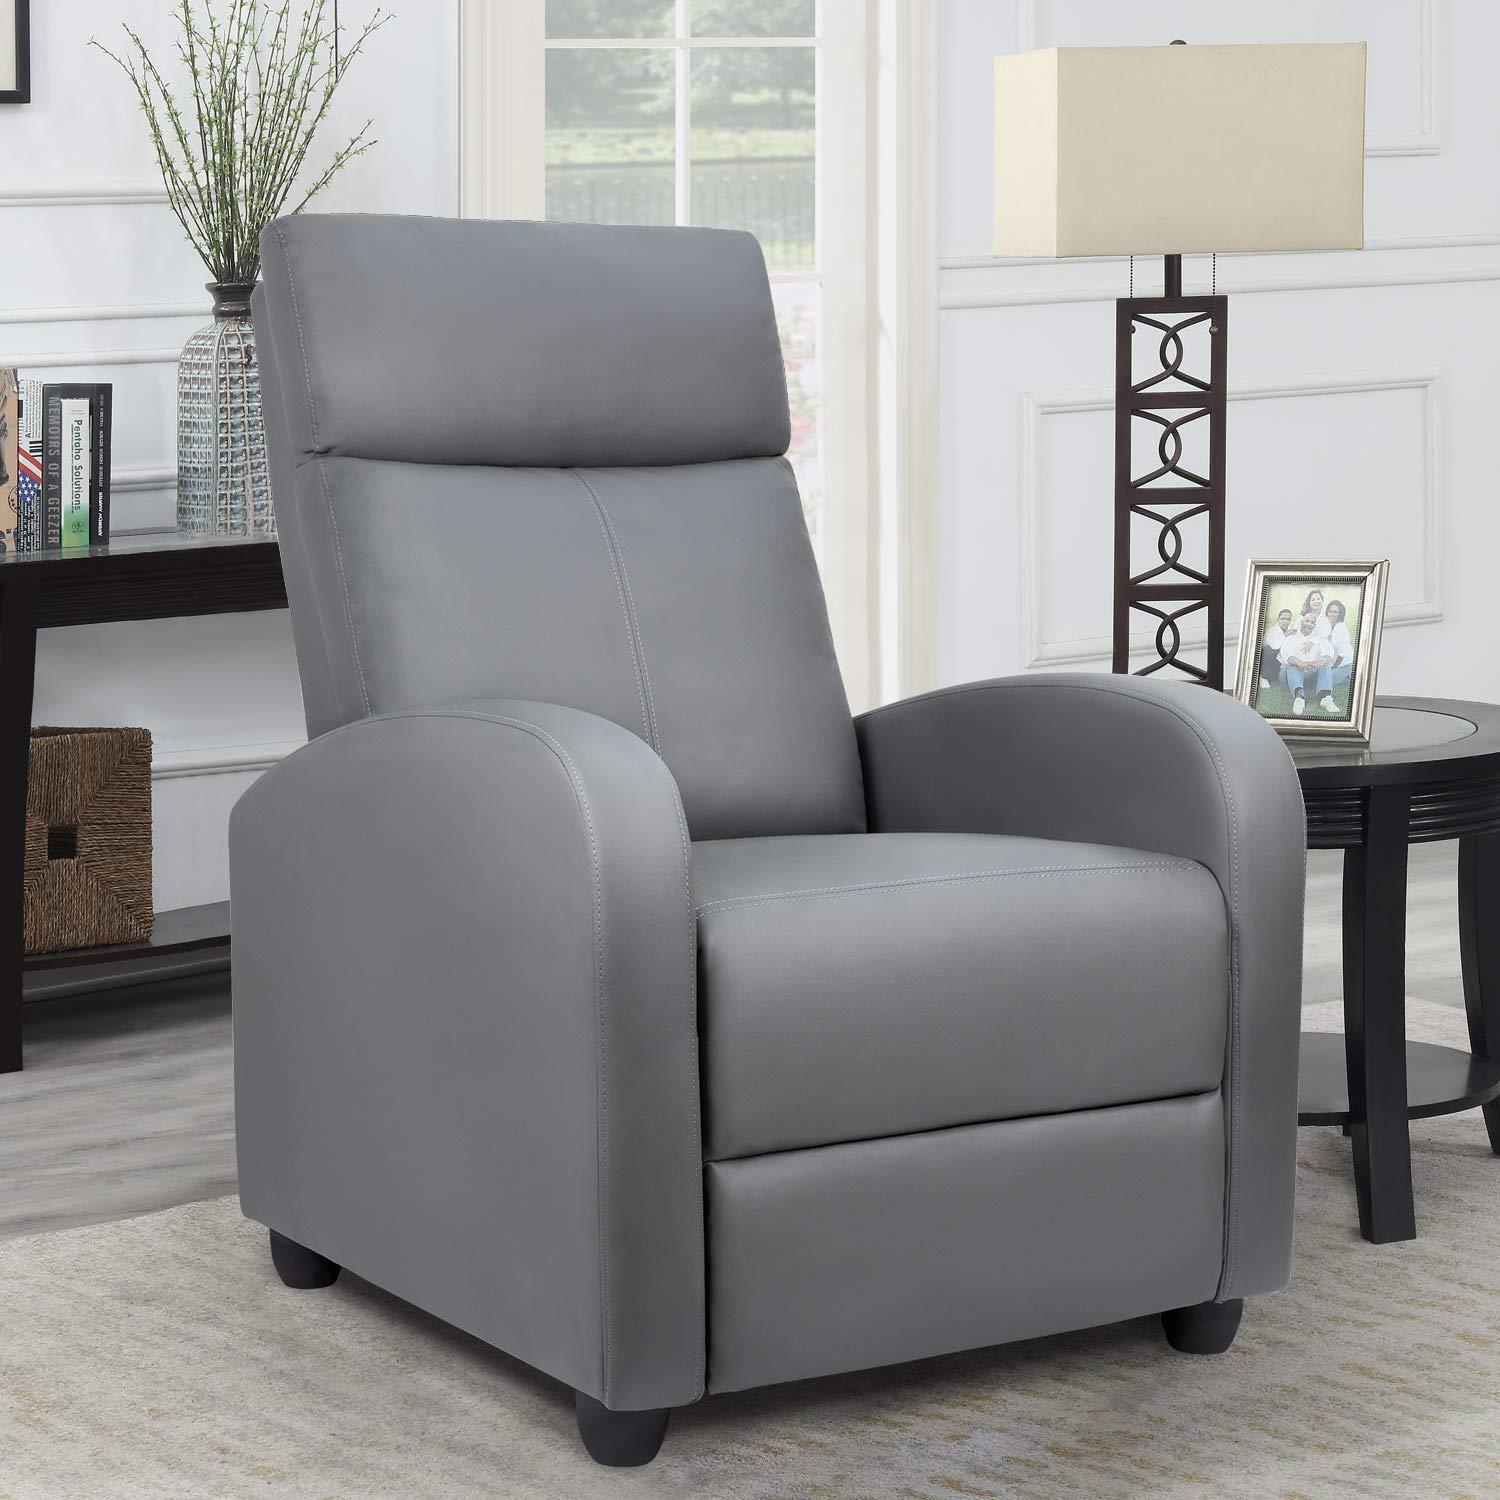 Homall Single Recliner Chair Padded Seat PU Leather Living Room Sofa Recliner Modern Recliner Seat Club Chair Home Theater Seating (Gray) by Homall